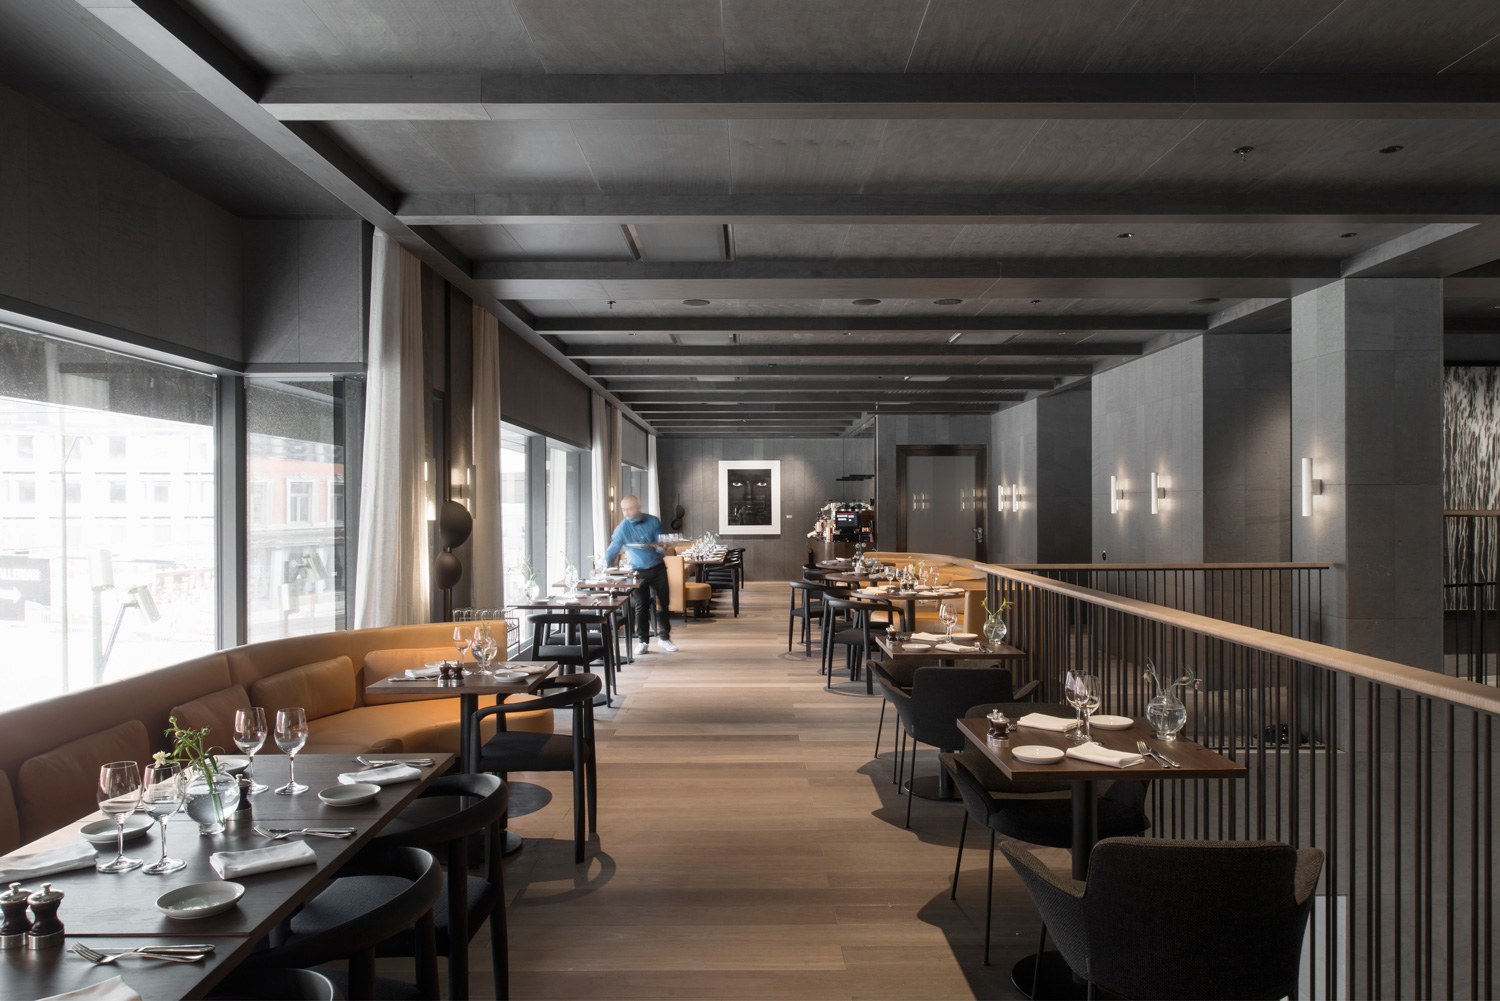 At Six Hotel Stockholm by Universal Design Studio